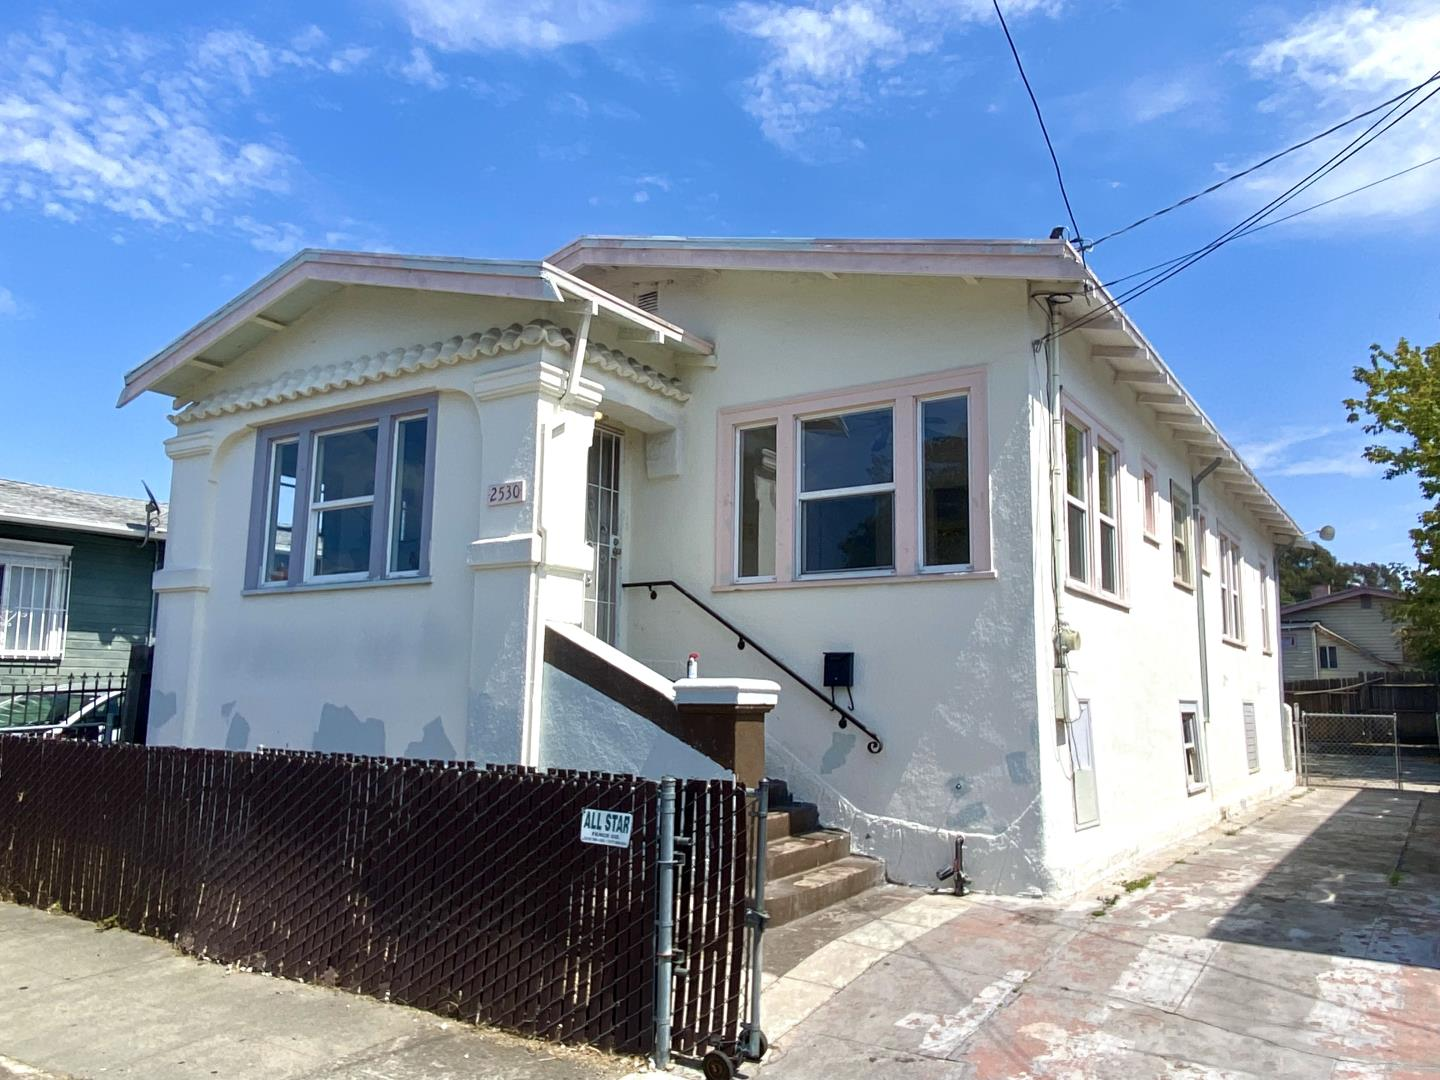 Best Value house in the Bay Area. It's actually a Four bedroom, but public records says Two. A three bedroom voucher will pay at least $3300/mo in rent, that yields over 6% return!  Large fenced yard with RV Parking!!  Huge Basement with Great Potential. Large living room with period detail with room for formal dining !  Kitchen leads to 4th Bedroom, or can be used as family room.  Ceiling fans in all rooms.  This will be a wonderful, and affordable home or a great rental!! Perfect for First time home buyer, or investor.  Where can you go to have RV parking and huge basement, plus No HOA, for this Price?   Video Tour : https://youtu.be/bE0OQ_F1X3s